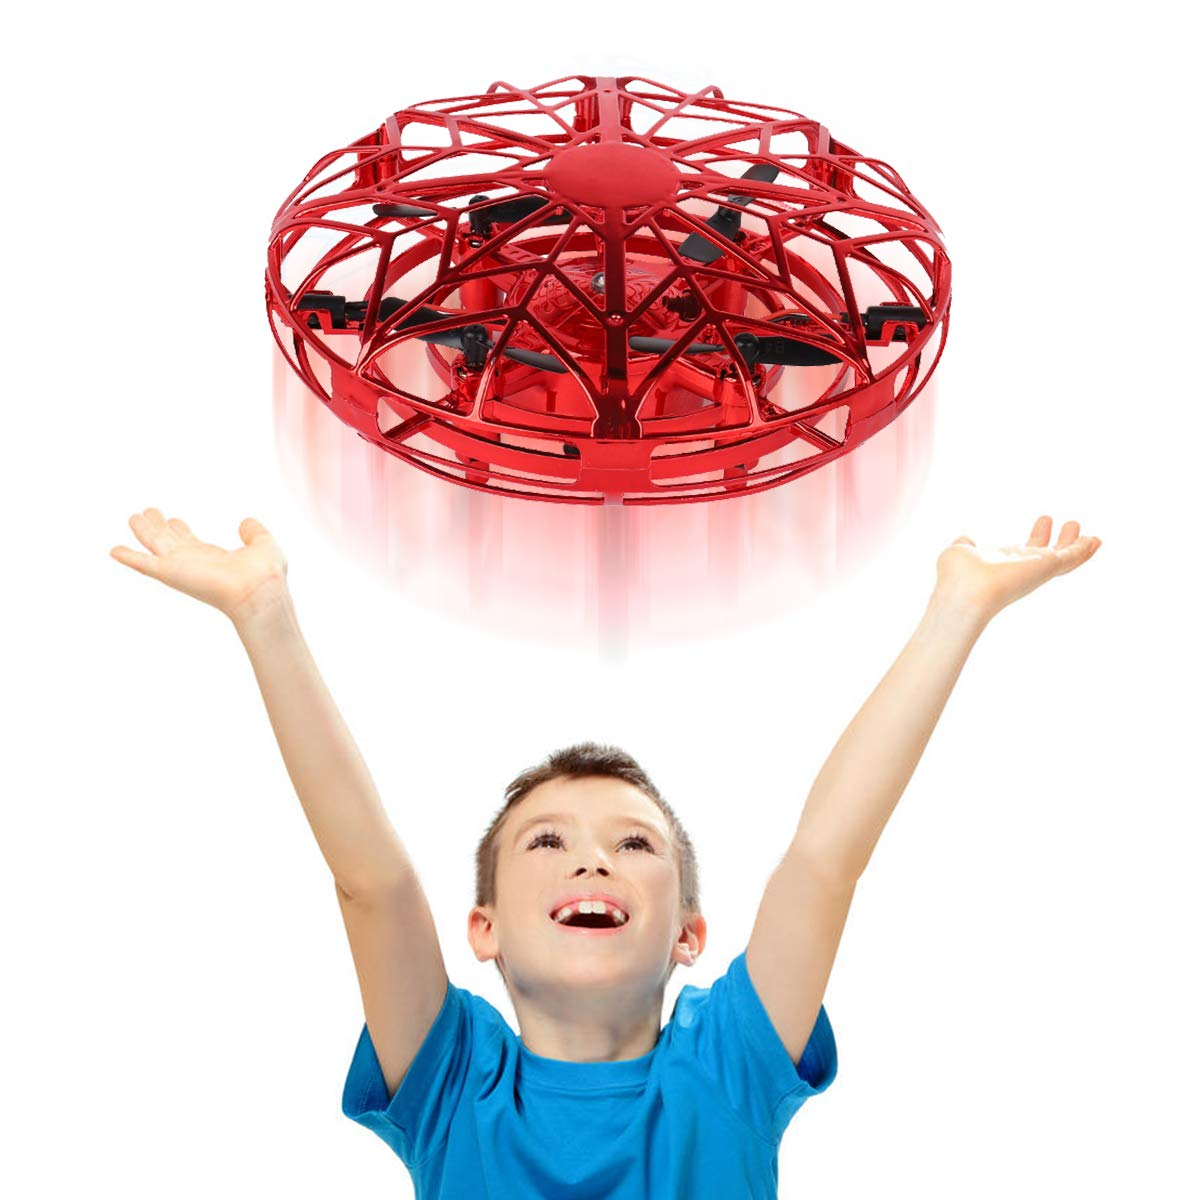 Byserten Toys for 4 5 6 Year Old Boys Byserten Mini Indoor Drone Air Magic Hogs Flying Toys Remote Control Helicopter UFO Hand Operated Drones for Kids with LED Lights Gifts Birthday Christmas Red by Byserten